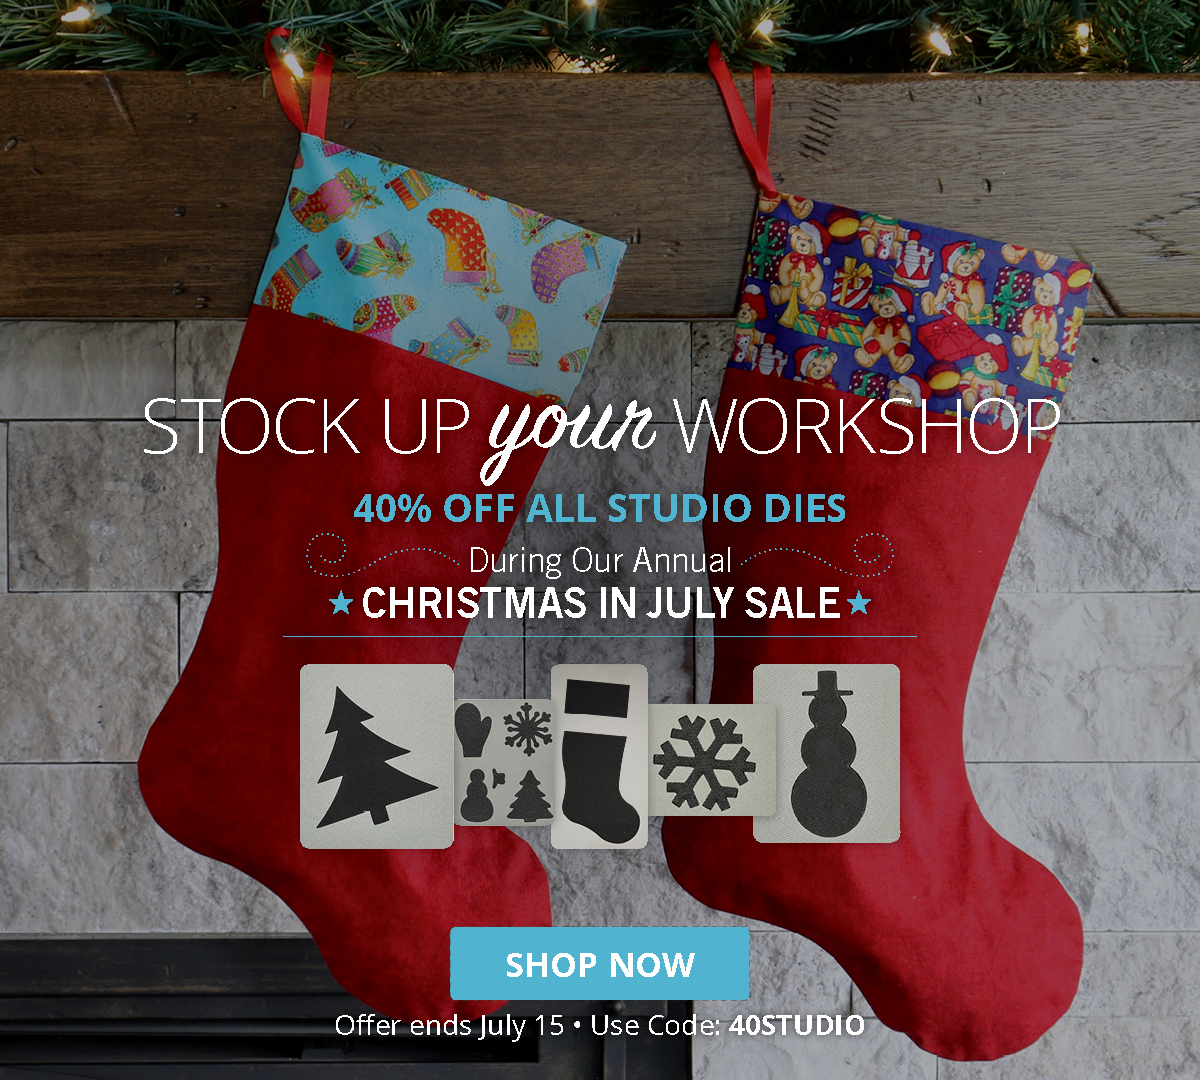 Stock Up Your Workshop | 40% Off ALL Studio Dies